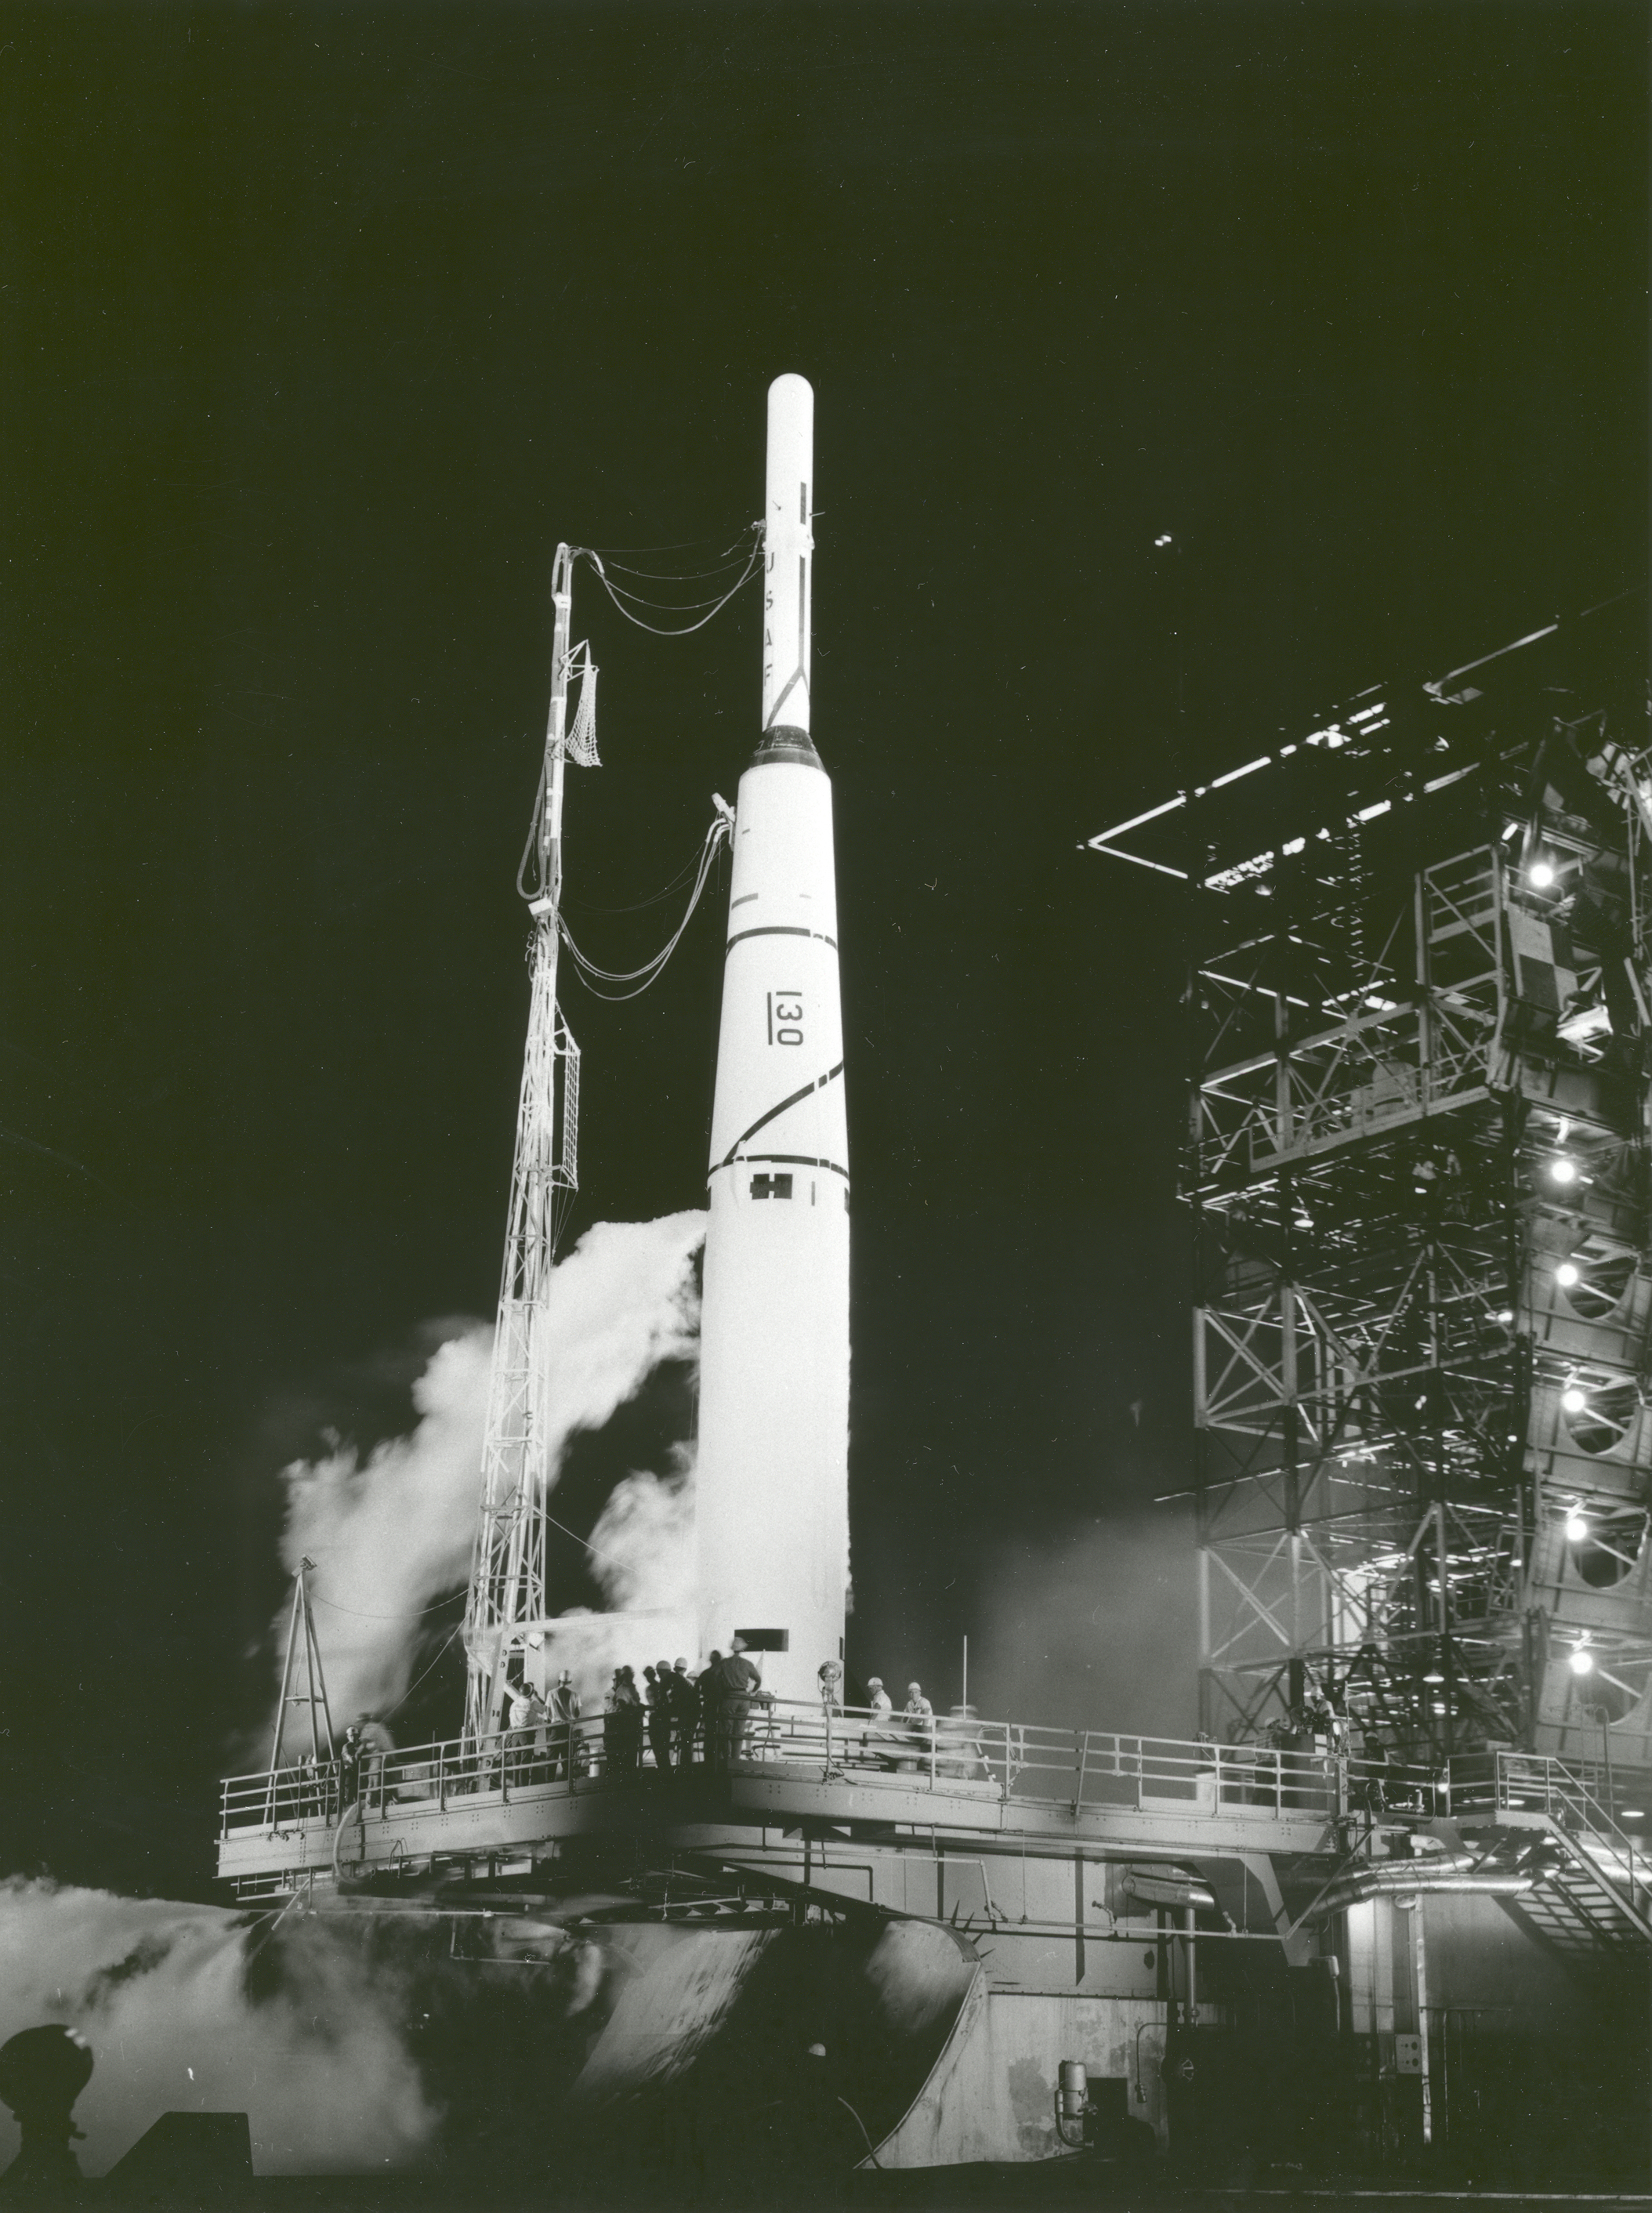 pioneer 6 spacecraft - photo #30